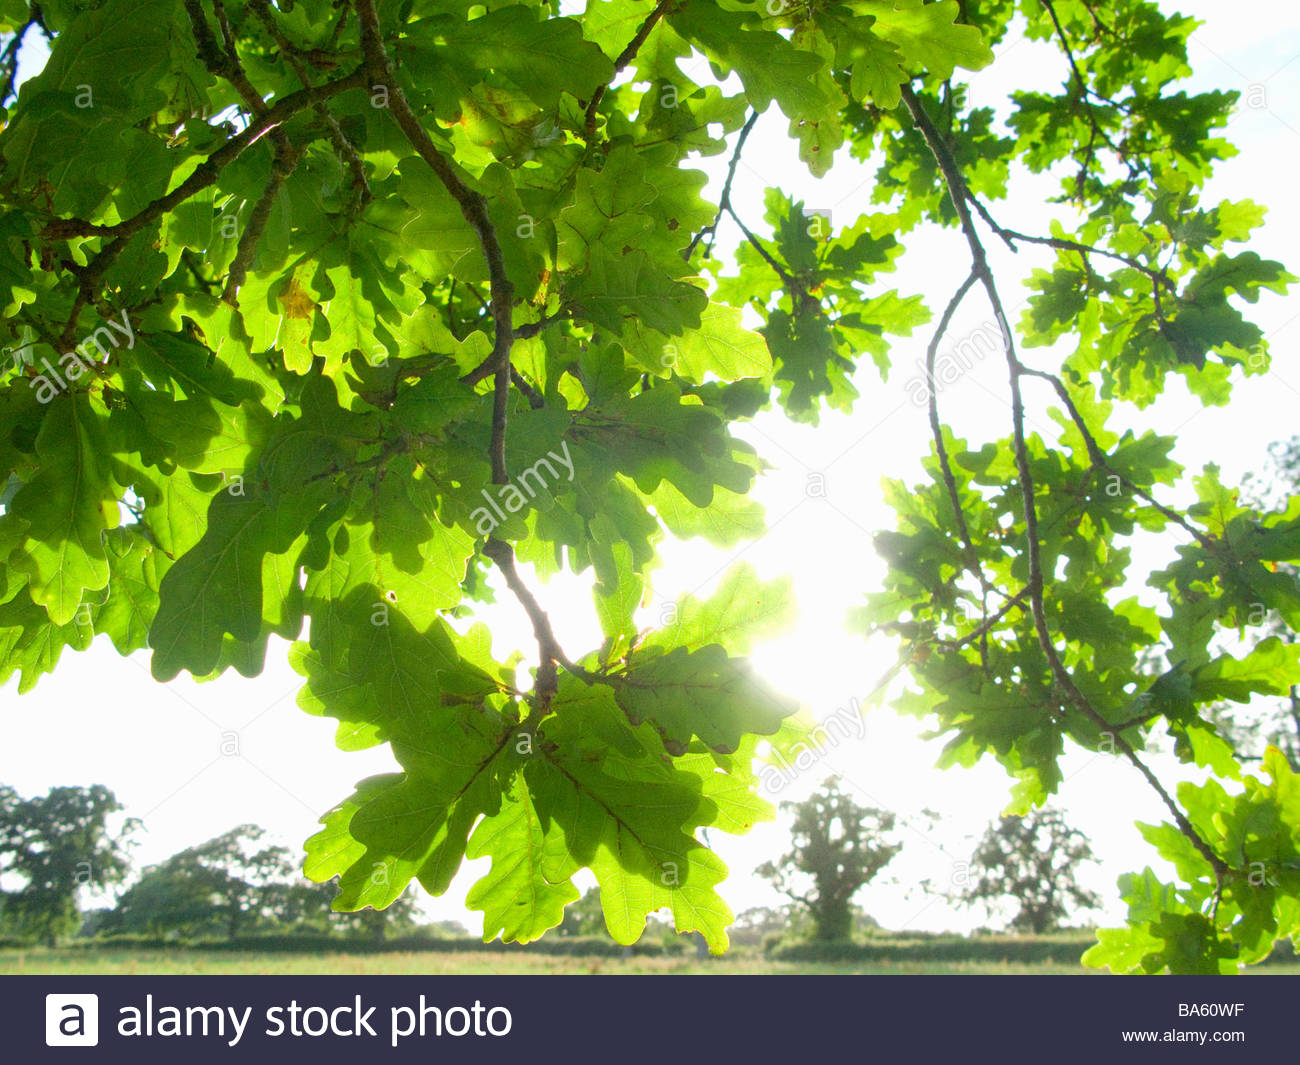 Oak Tree Leaves Stock Photos & Oak Tree Leaves Stock Images - Alamy